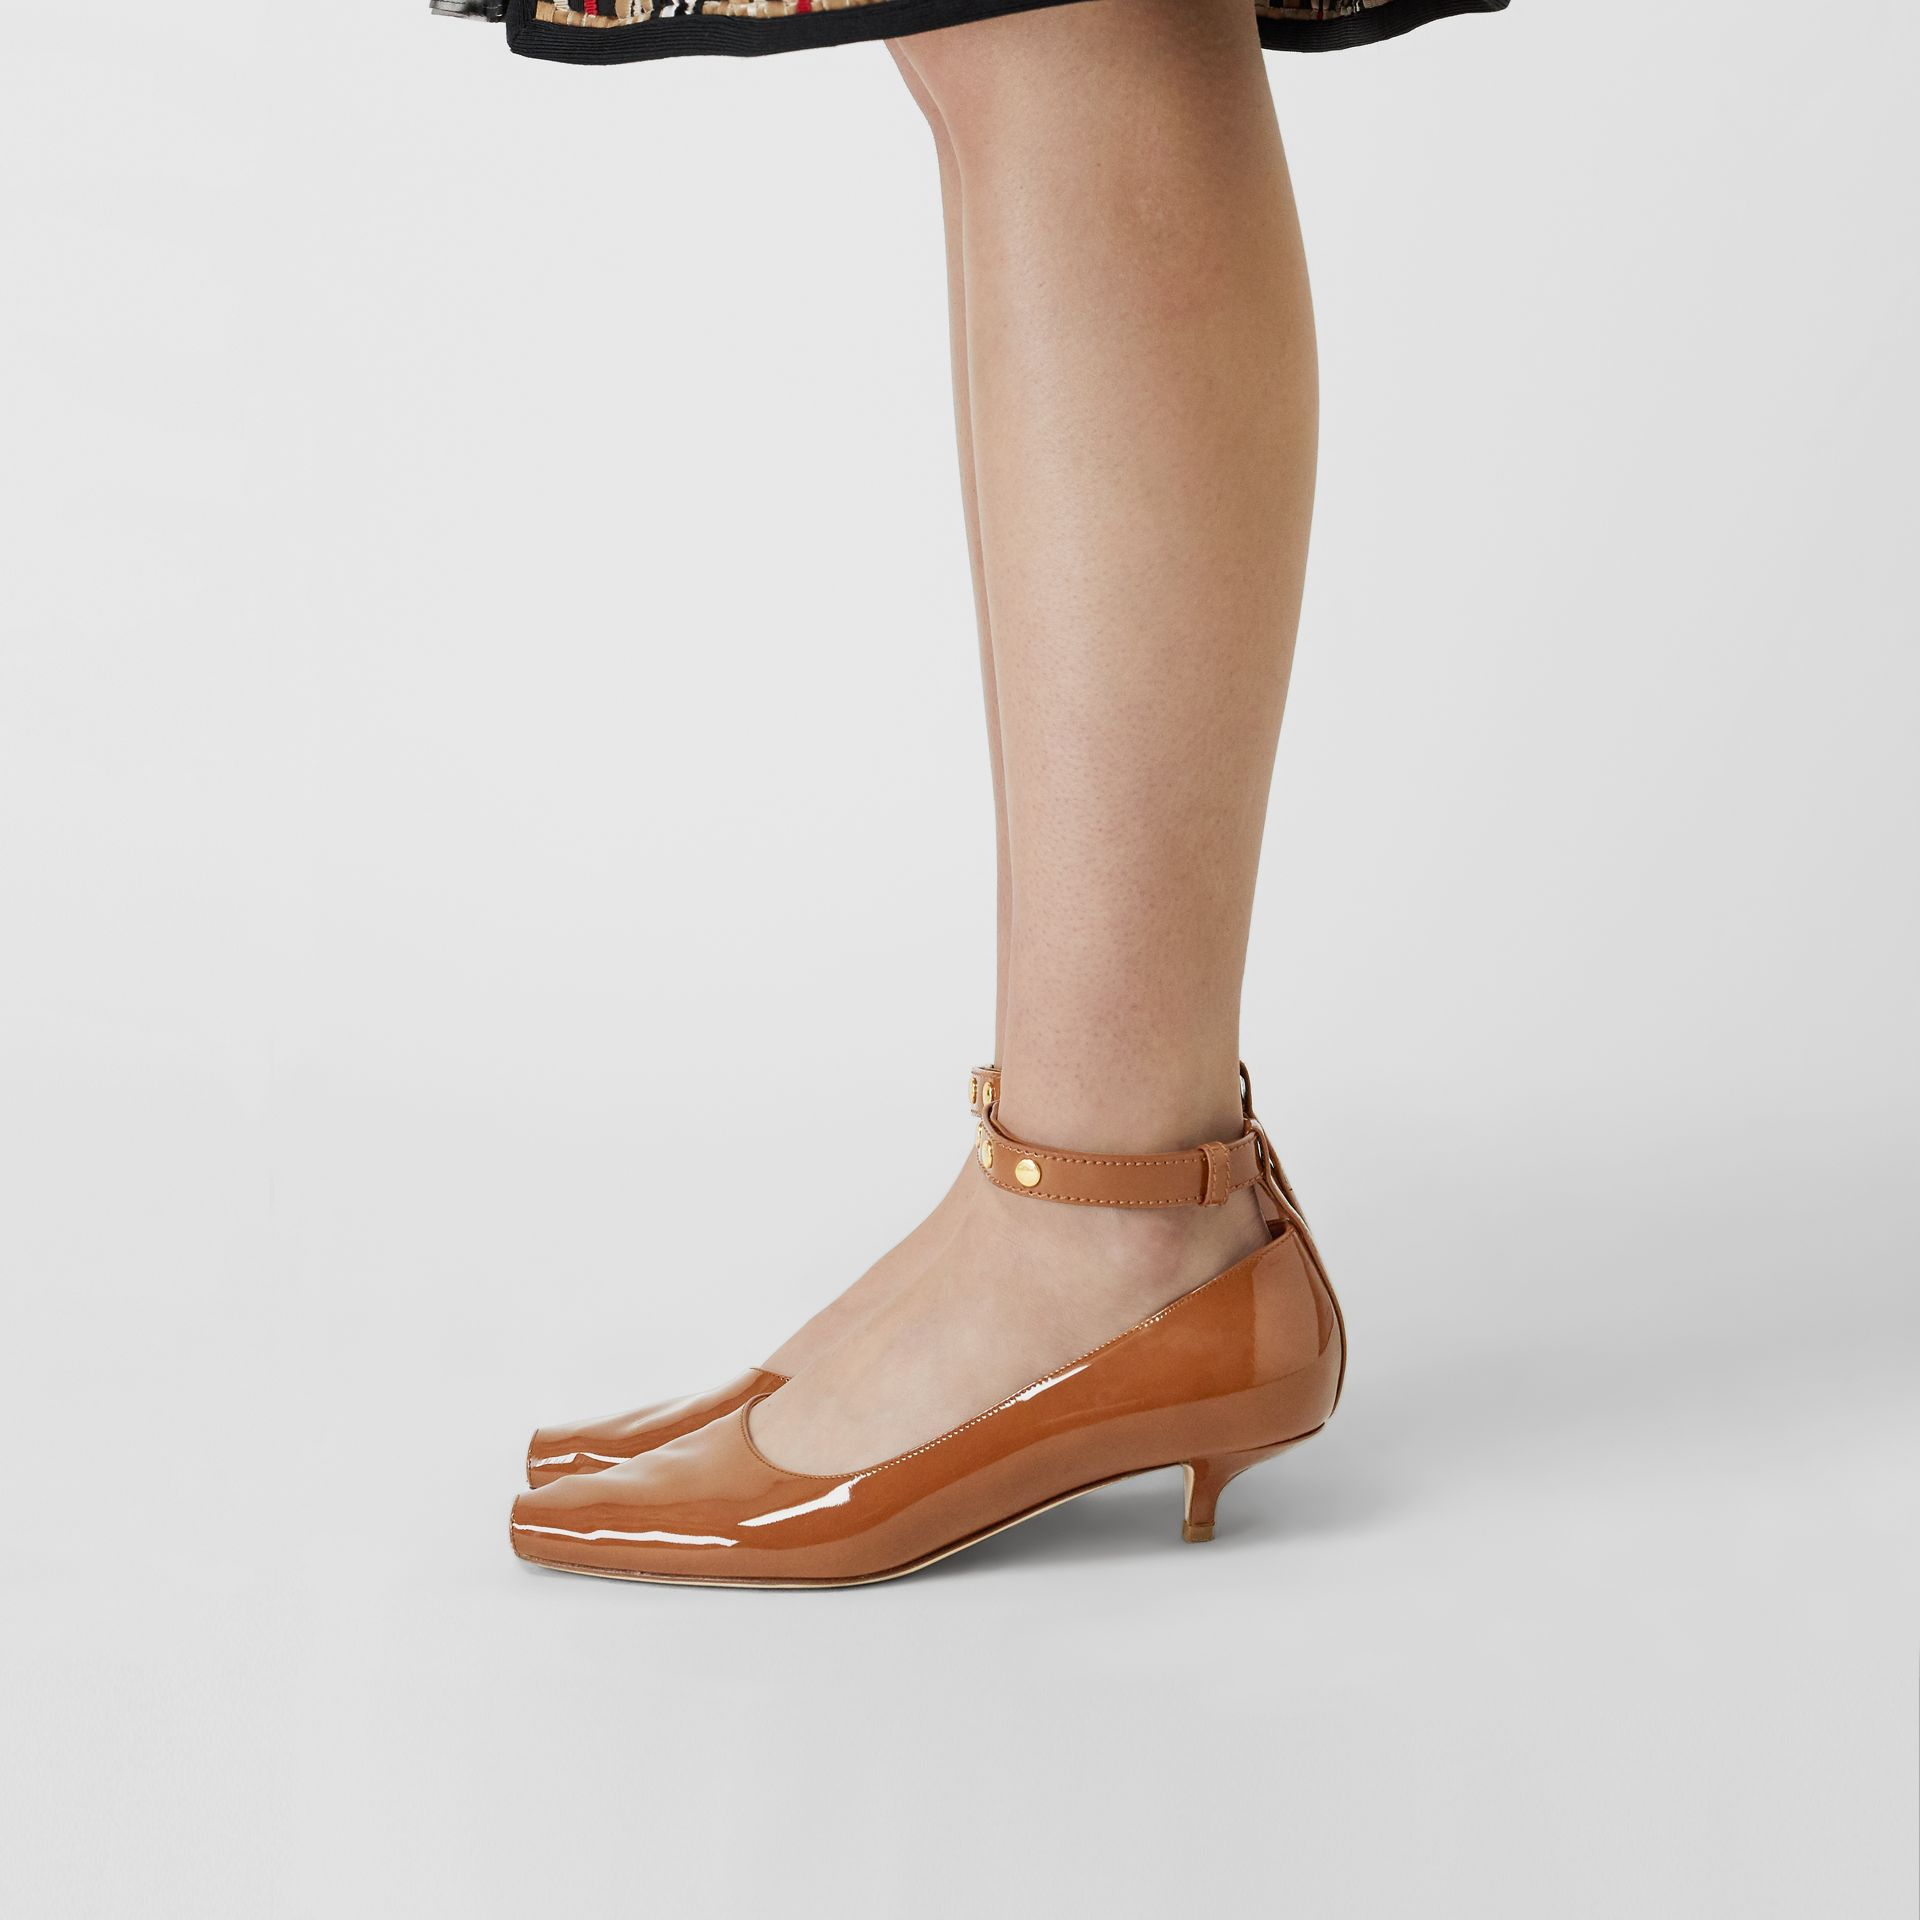 Patent Leather Peep-toe Kitten-heel Pumps in Tan - Women | Burberry Singapore - gallery image 2